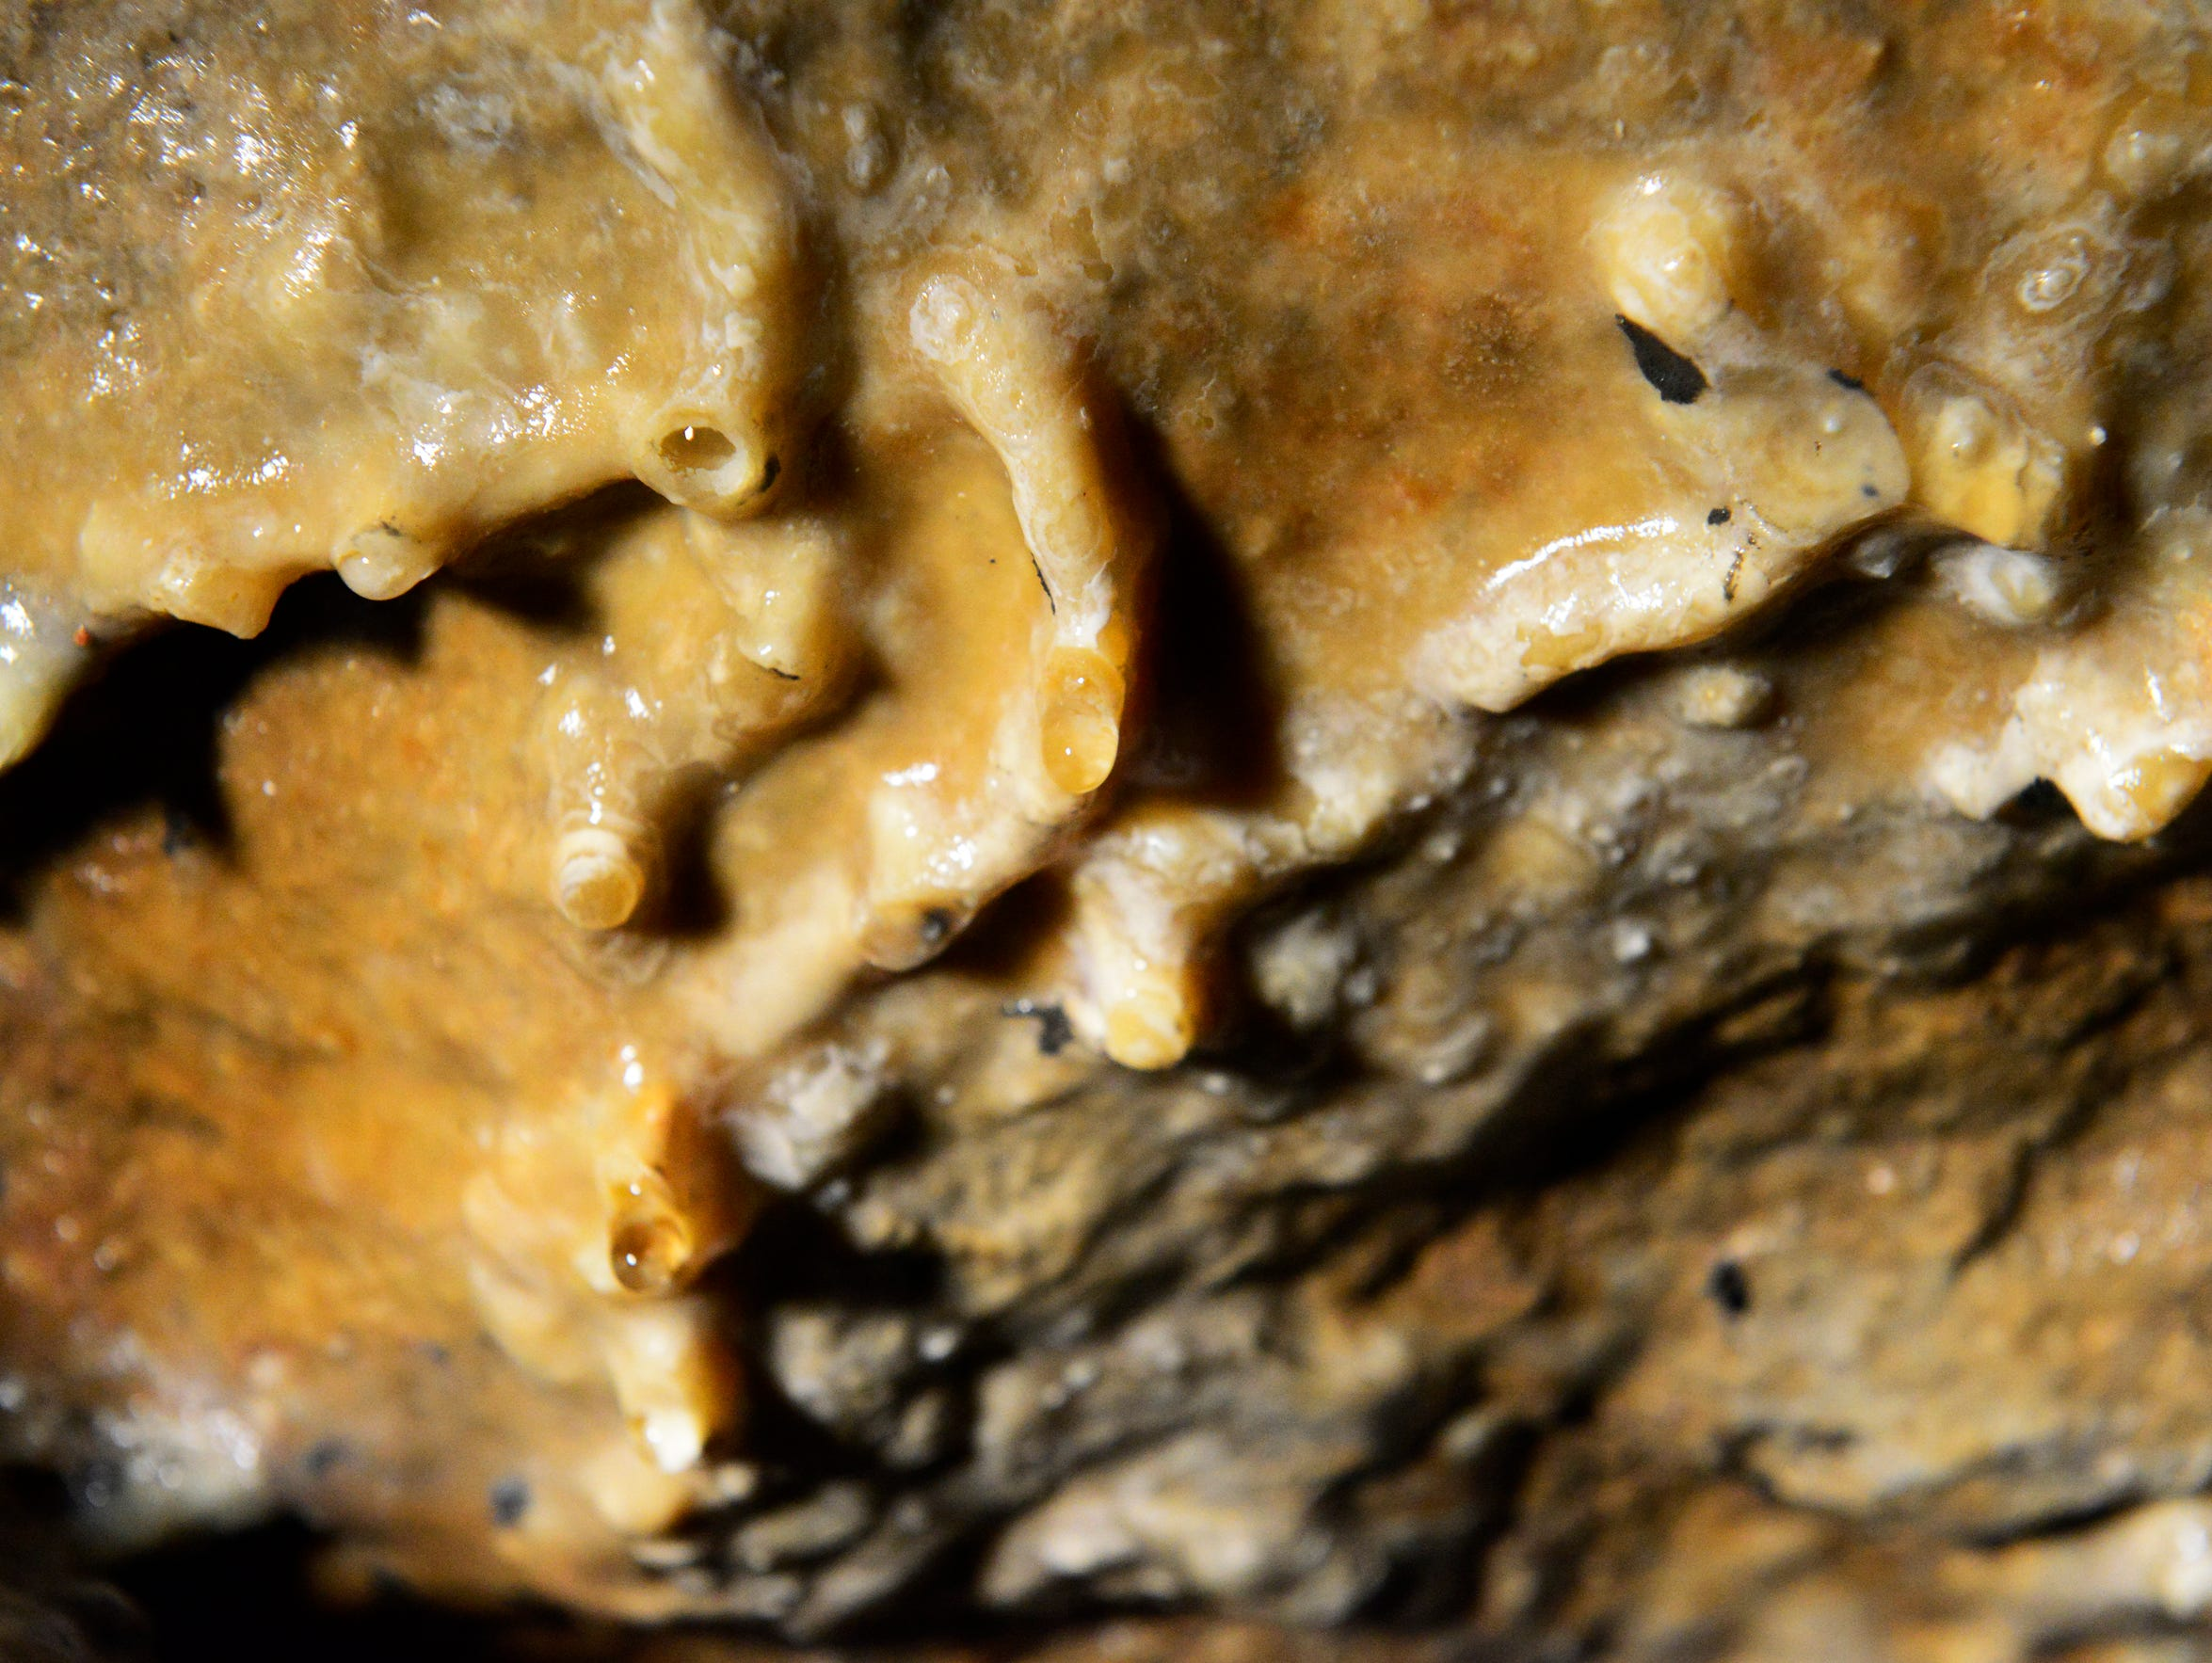 The limestone cave is 52 feet underground, with a temperature